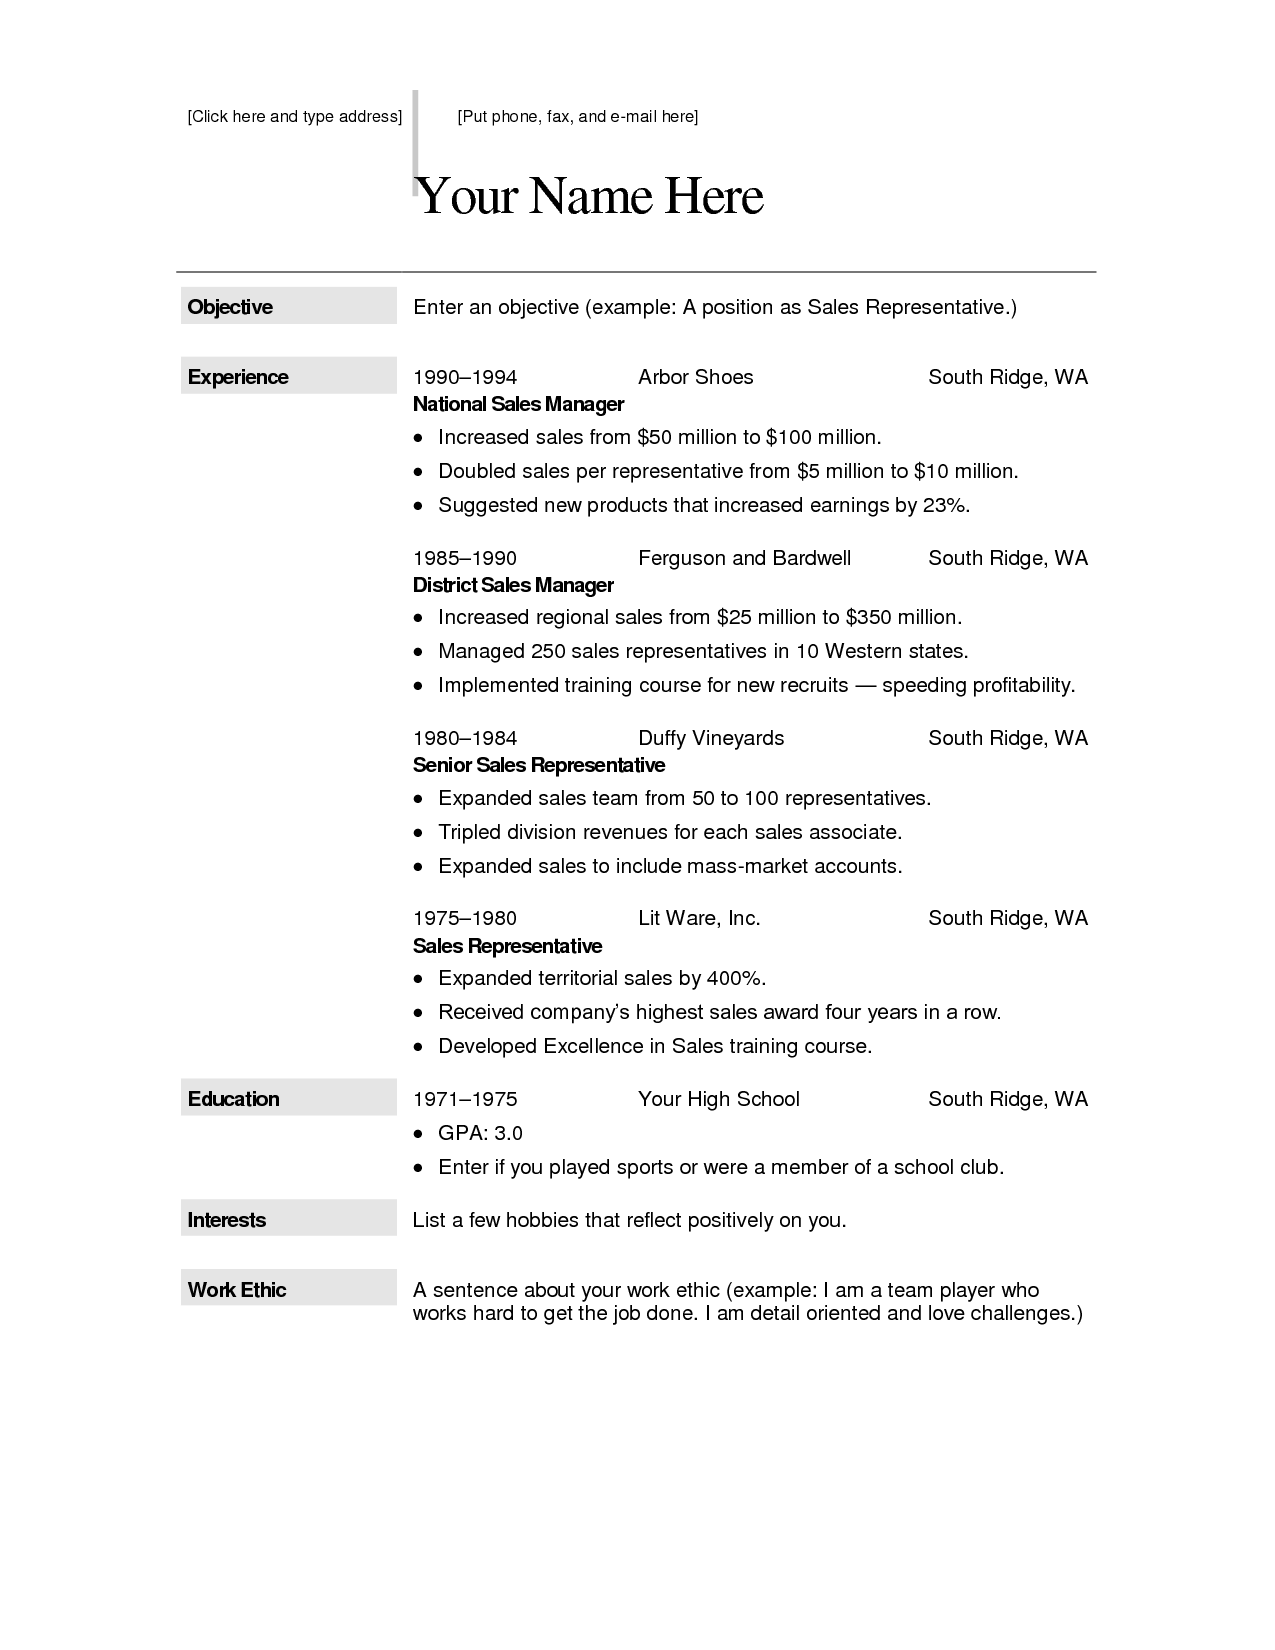 visual resume templates free download visual resume templates free visual resume templates free download visual resume